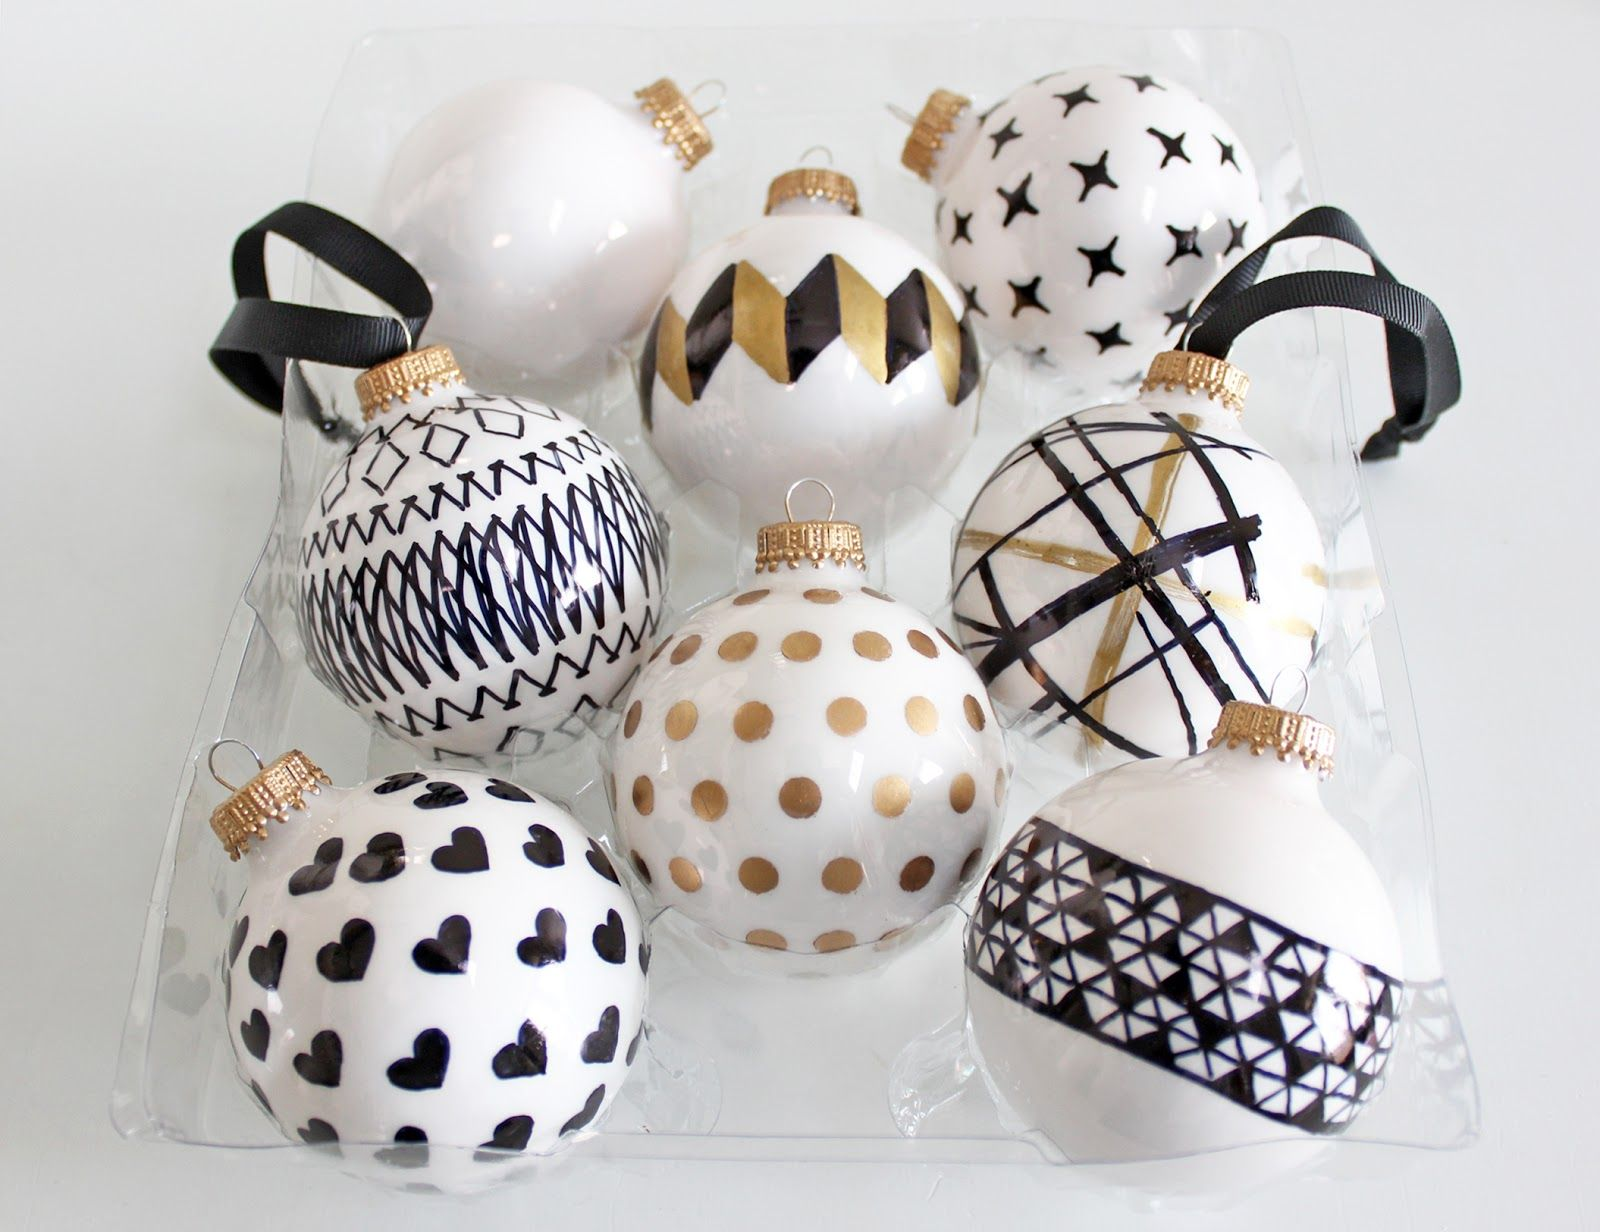 Am Dolce Vita: Diy Handpainted Holiday Ball Ornaments, Diy Ball Ornaments,  Black White